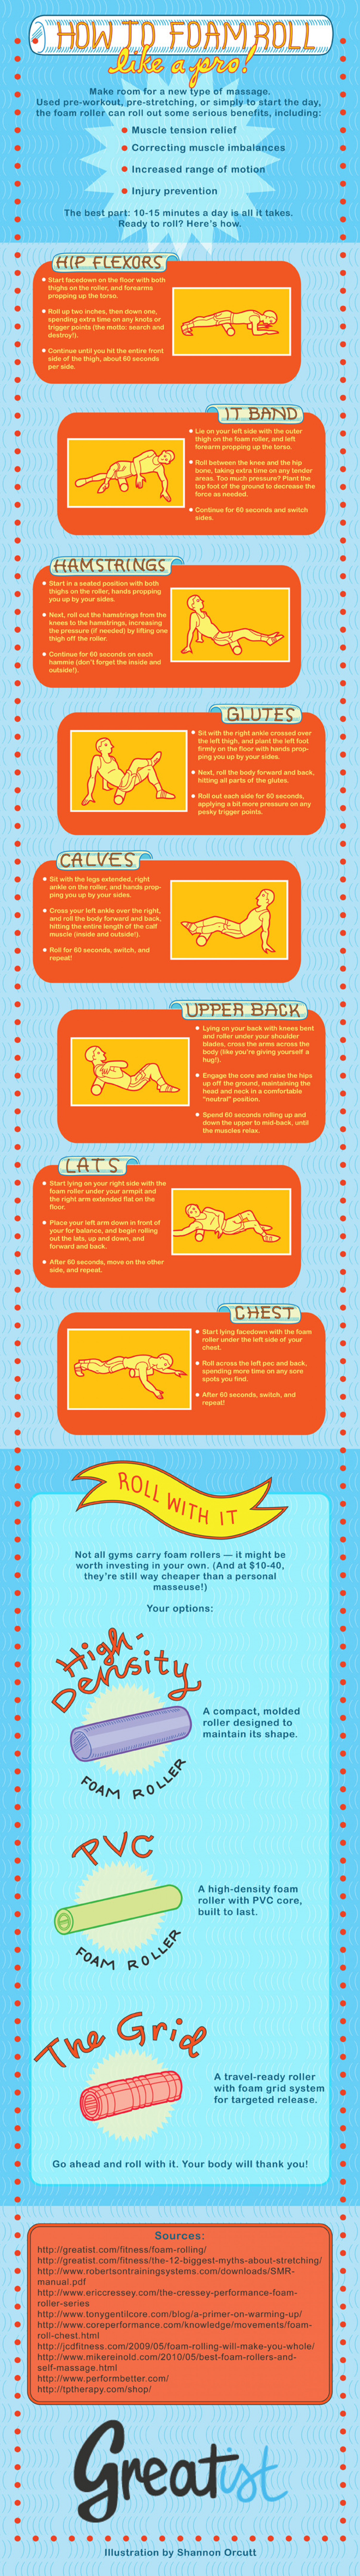 How To Foam Roll Like a Pro Infographic